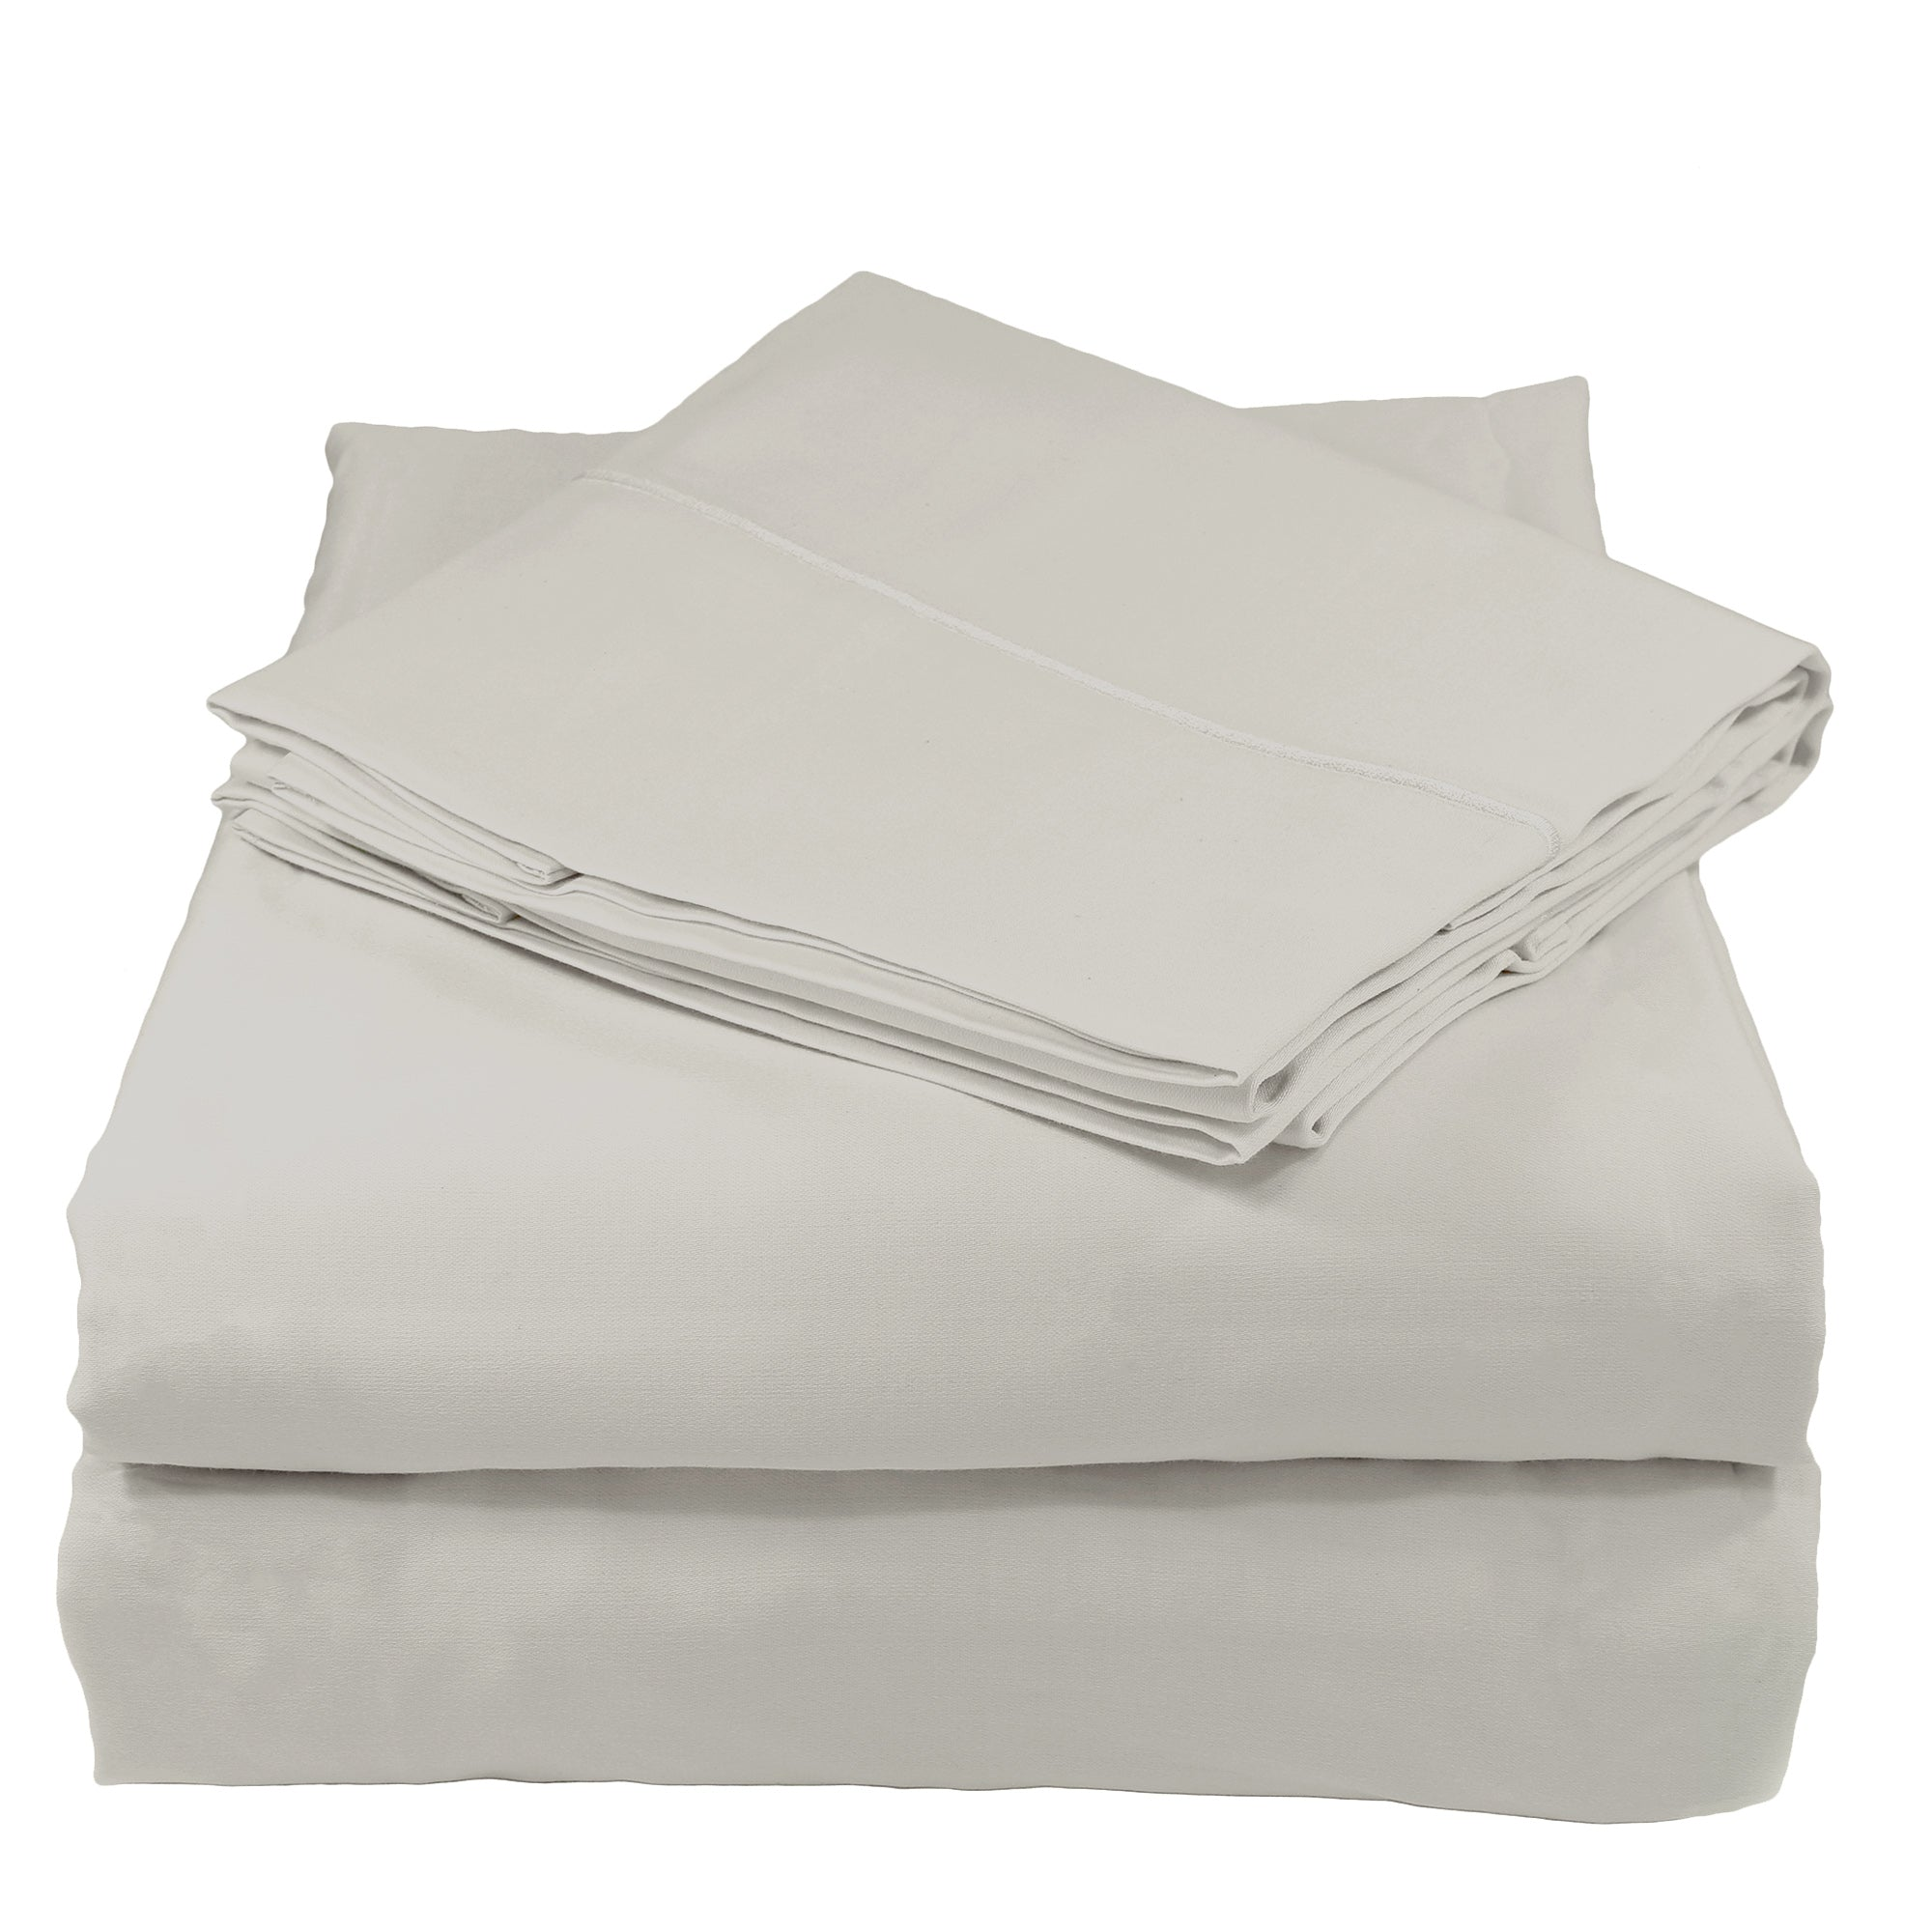 300 Thread Count Organic Sheet Sets - Sateen